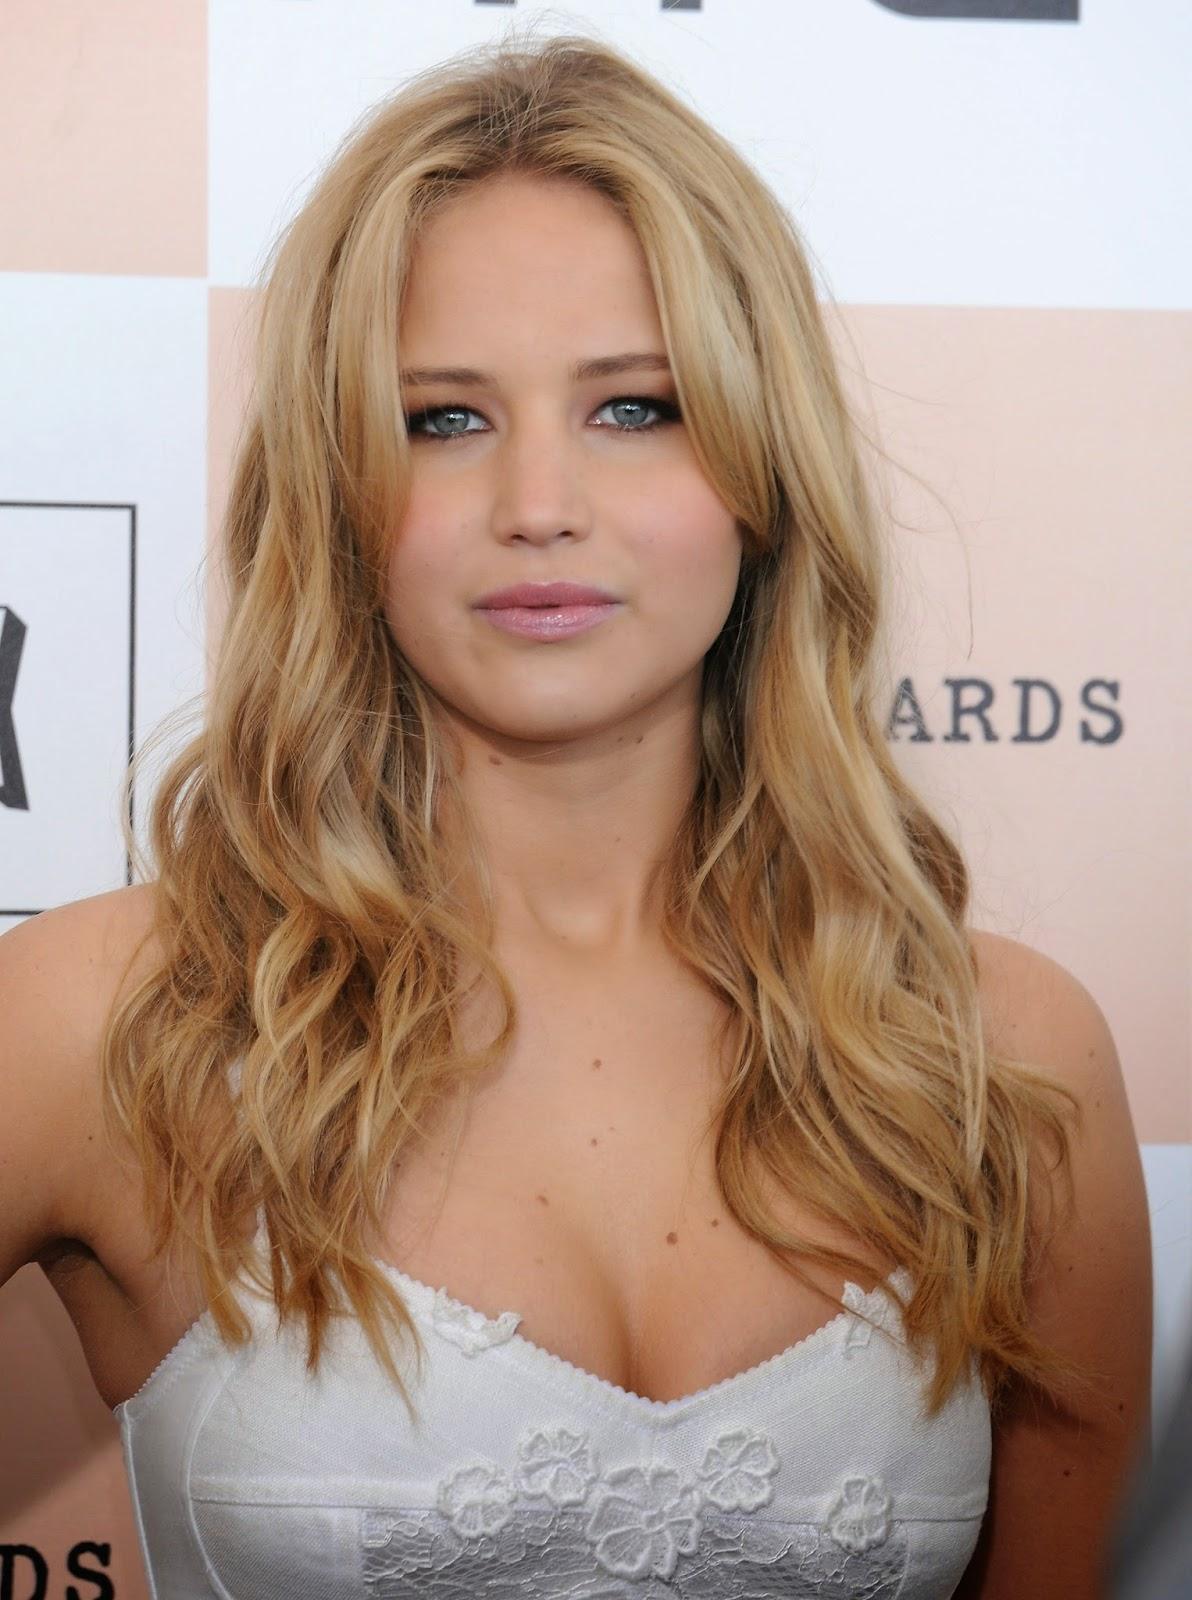 Sports Scandal: Jennifer Lawrence a chance to win MTV ...